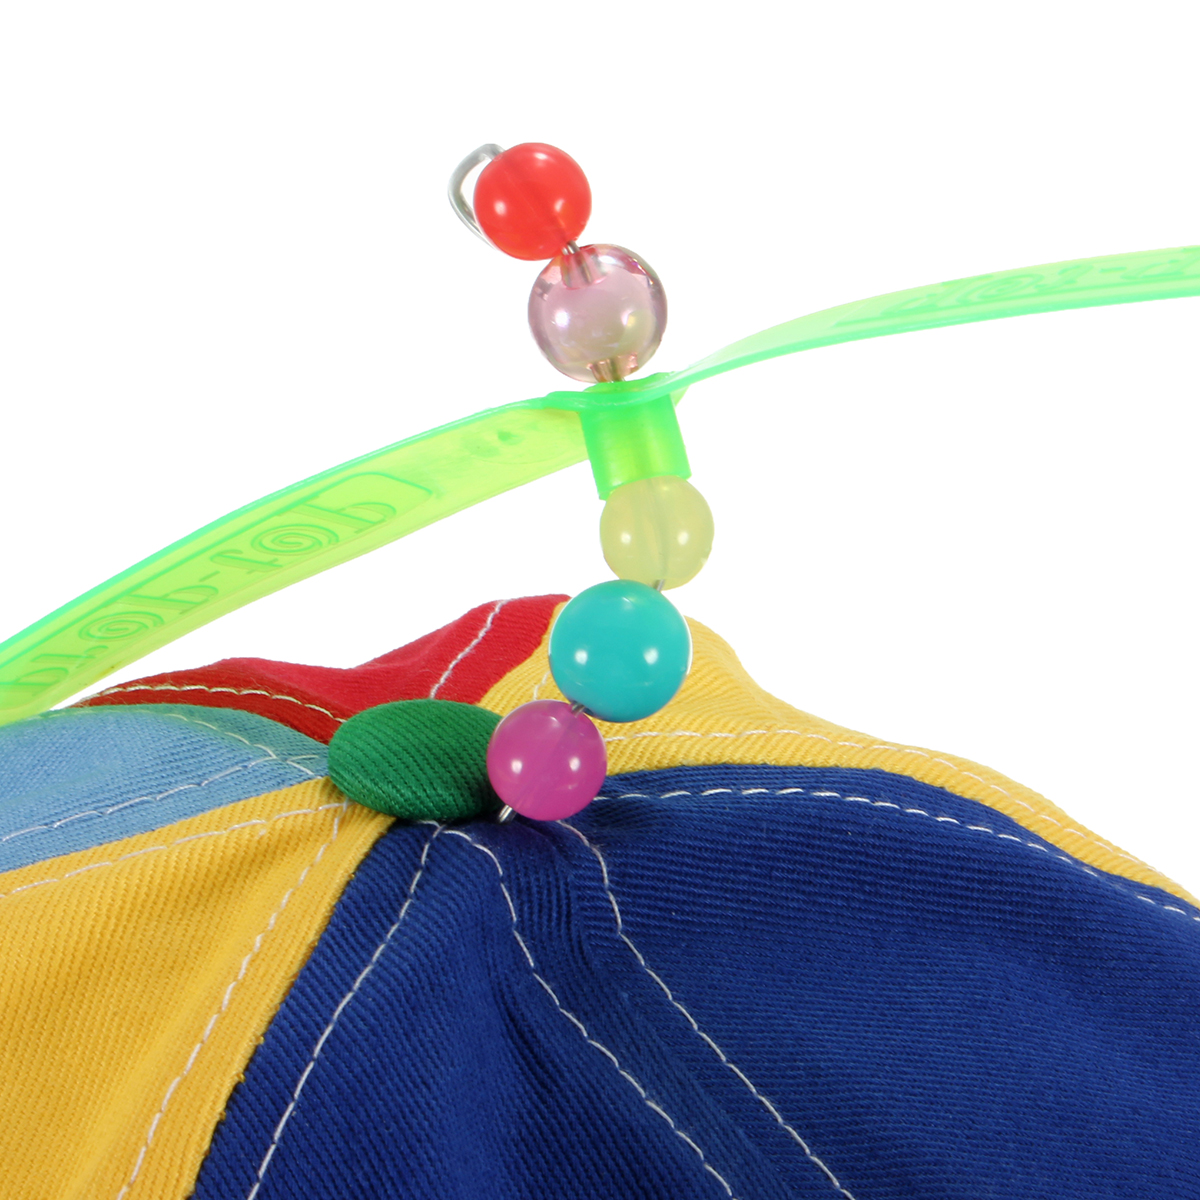 Women Copter Helicopter Propeller Hat Multi-color Patchwork Dragonfly Top Ball Cap